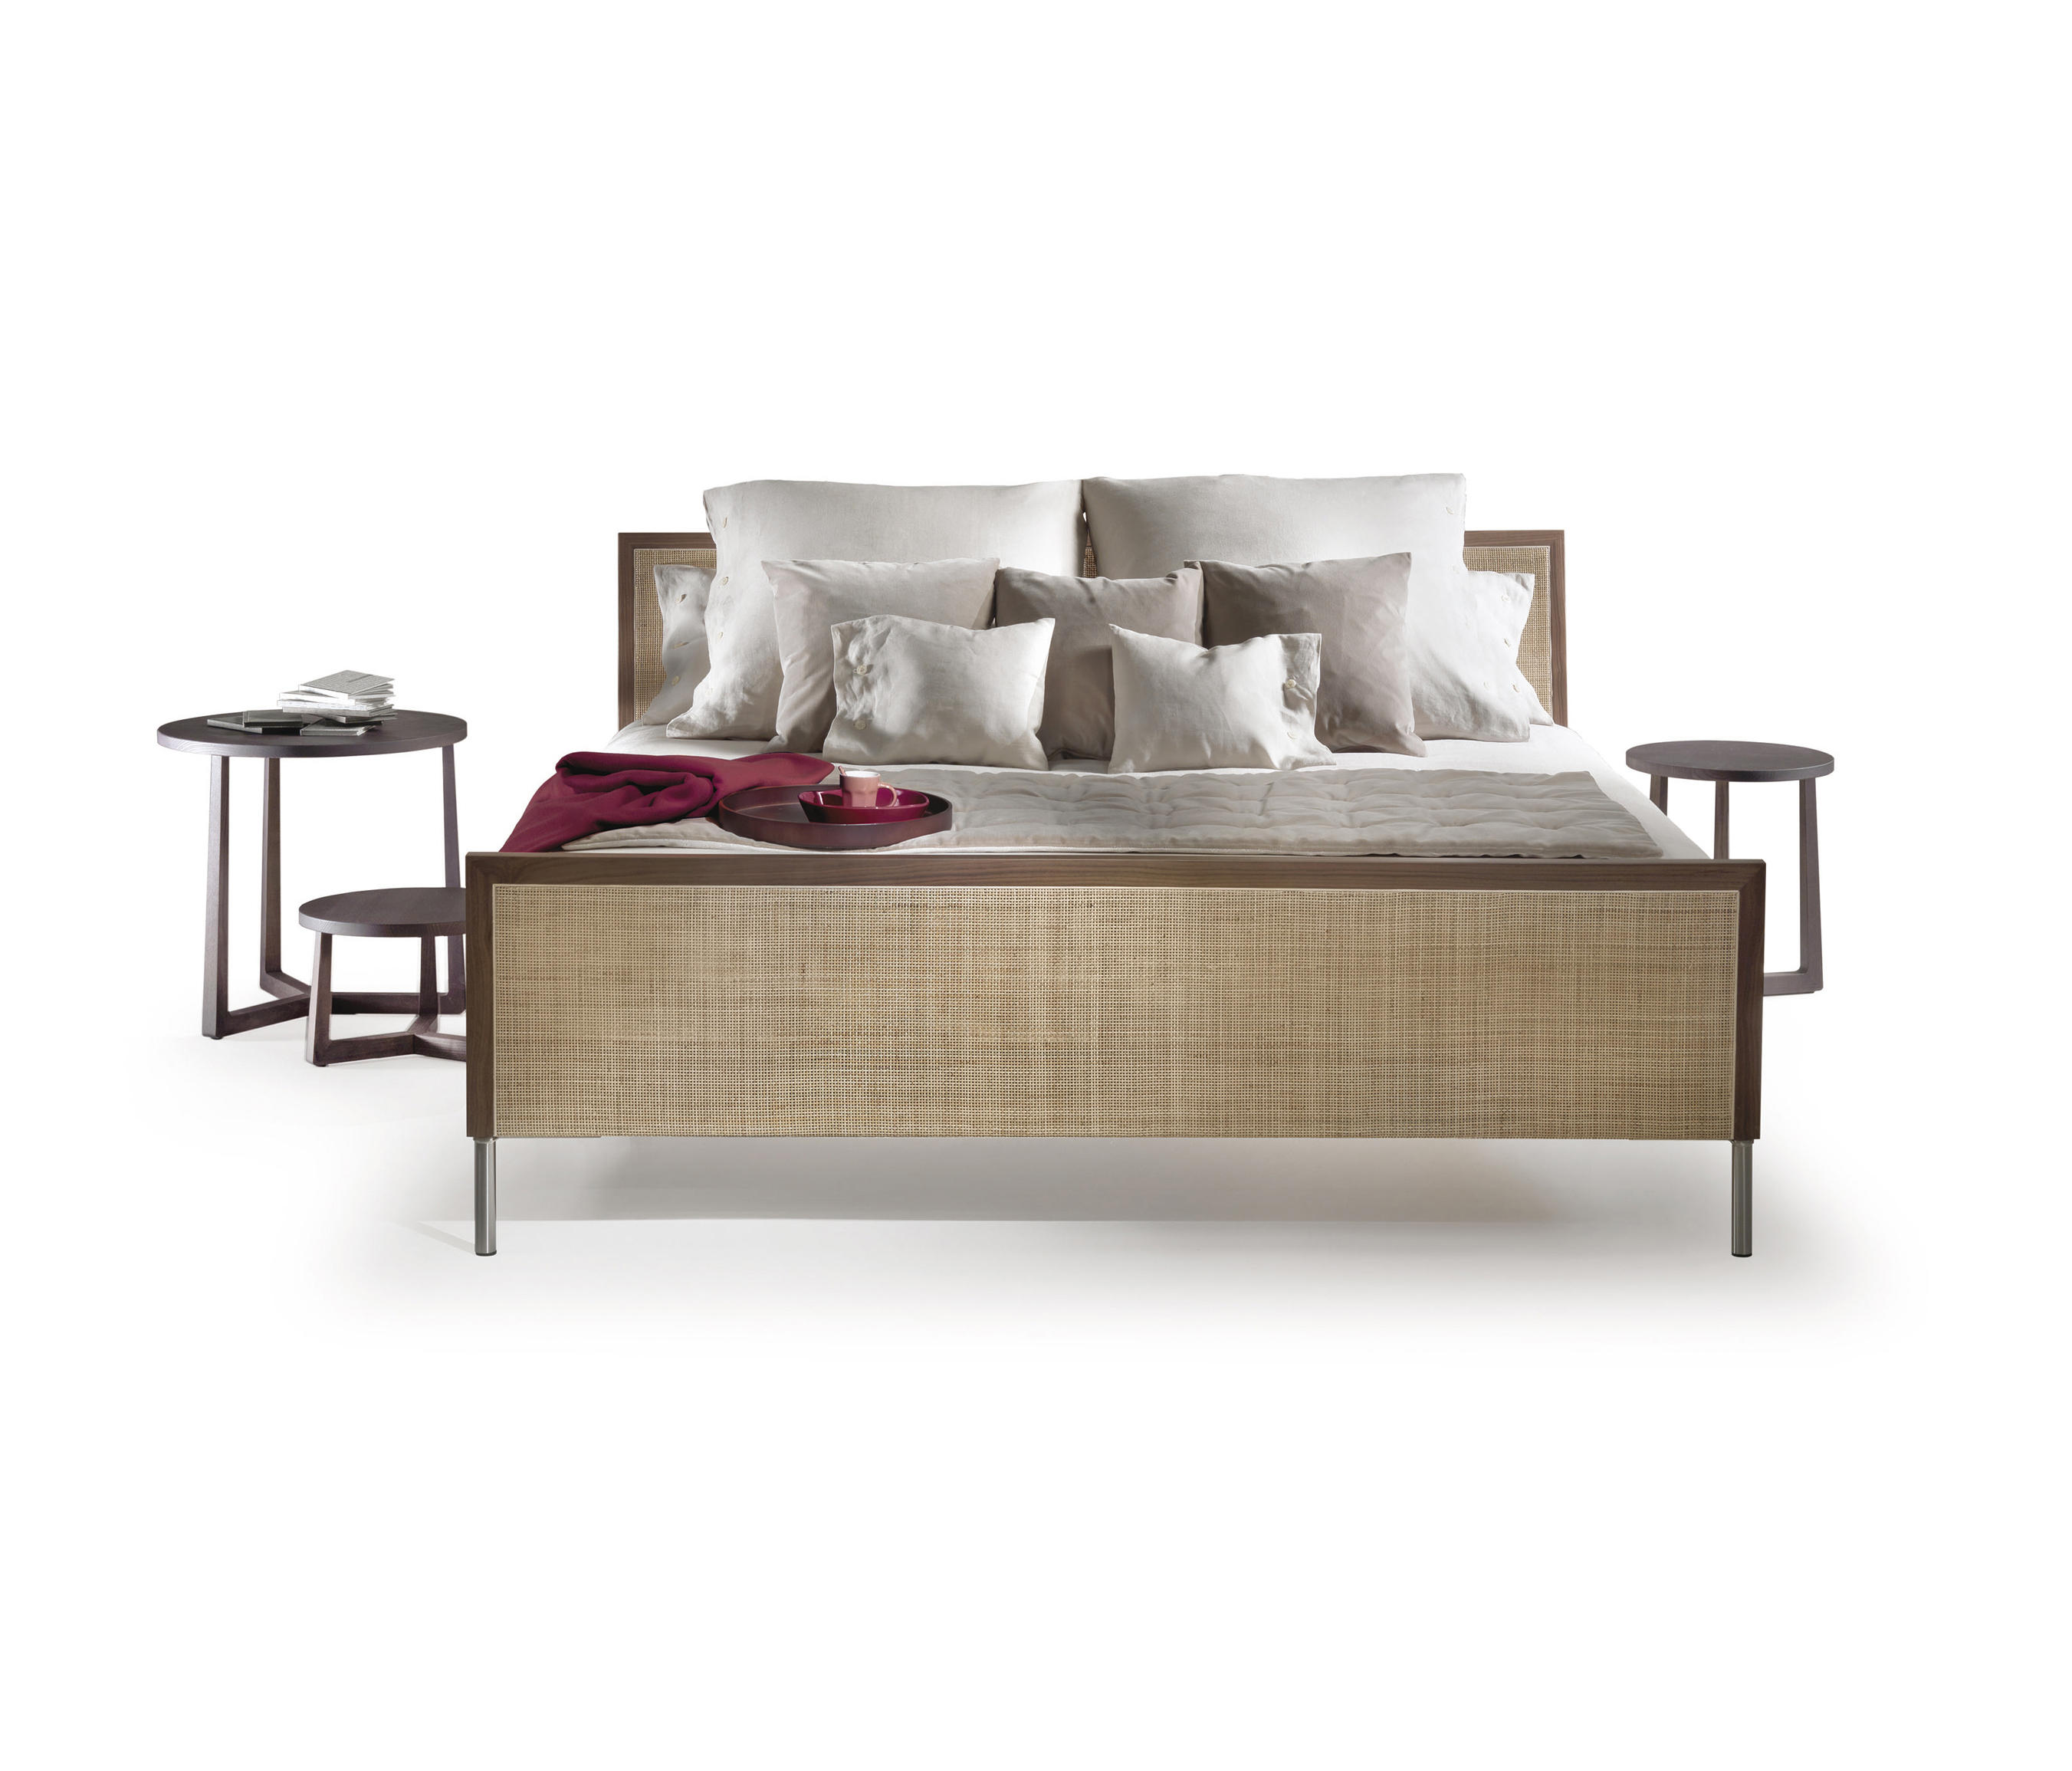 PIANO BED Double beds from Flexform